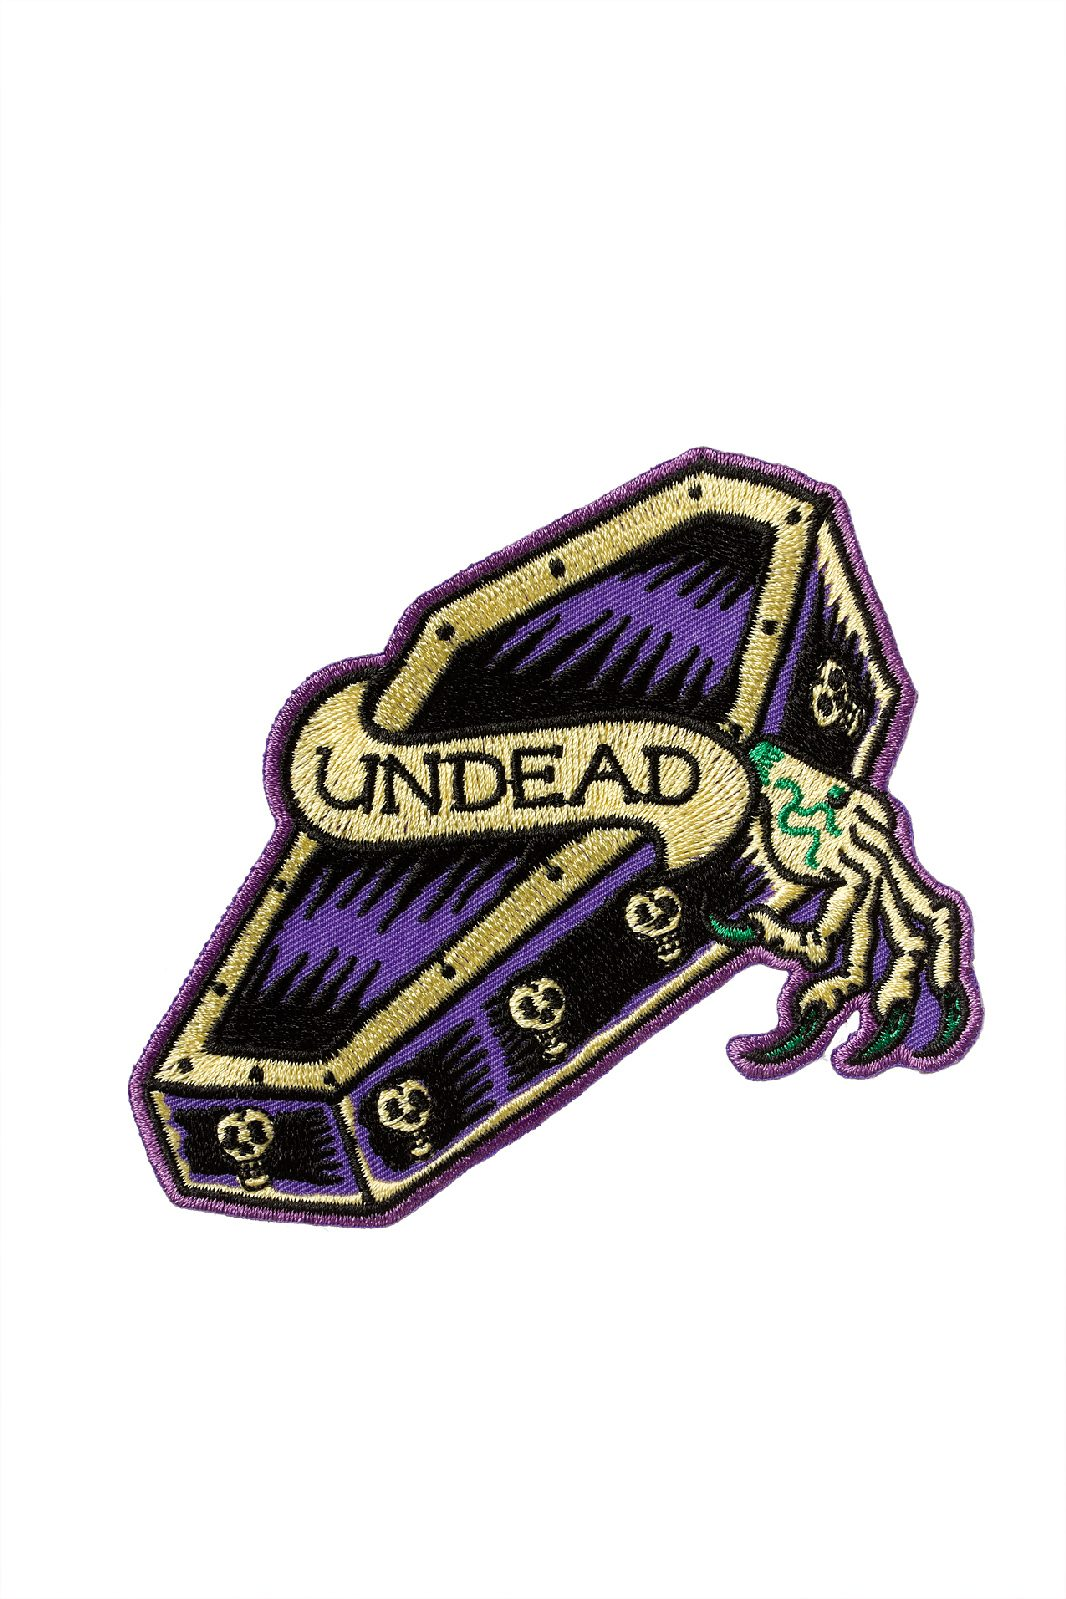 Undead Patch